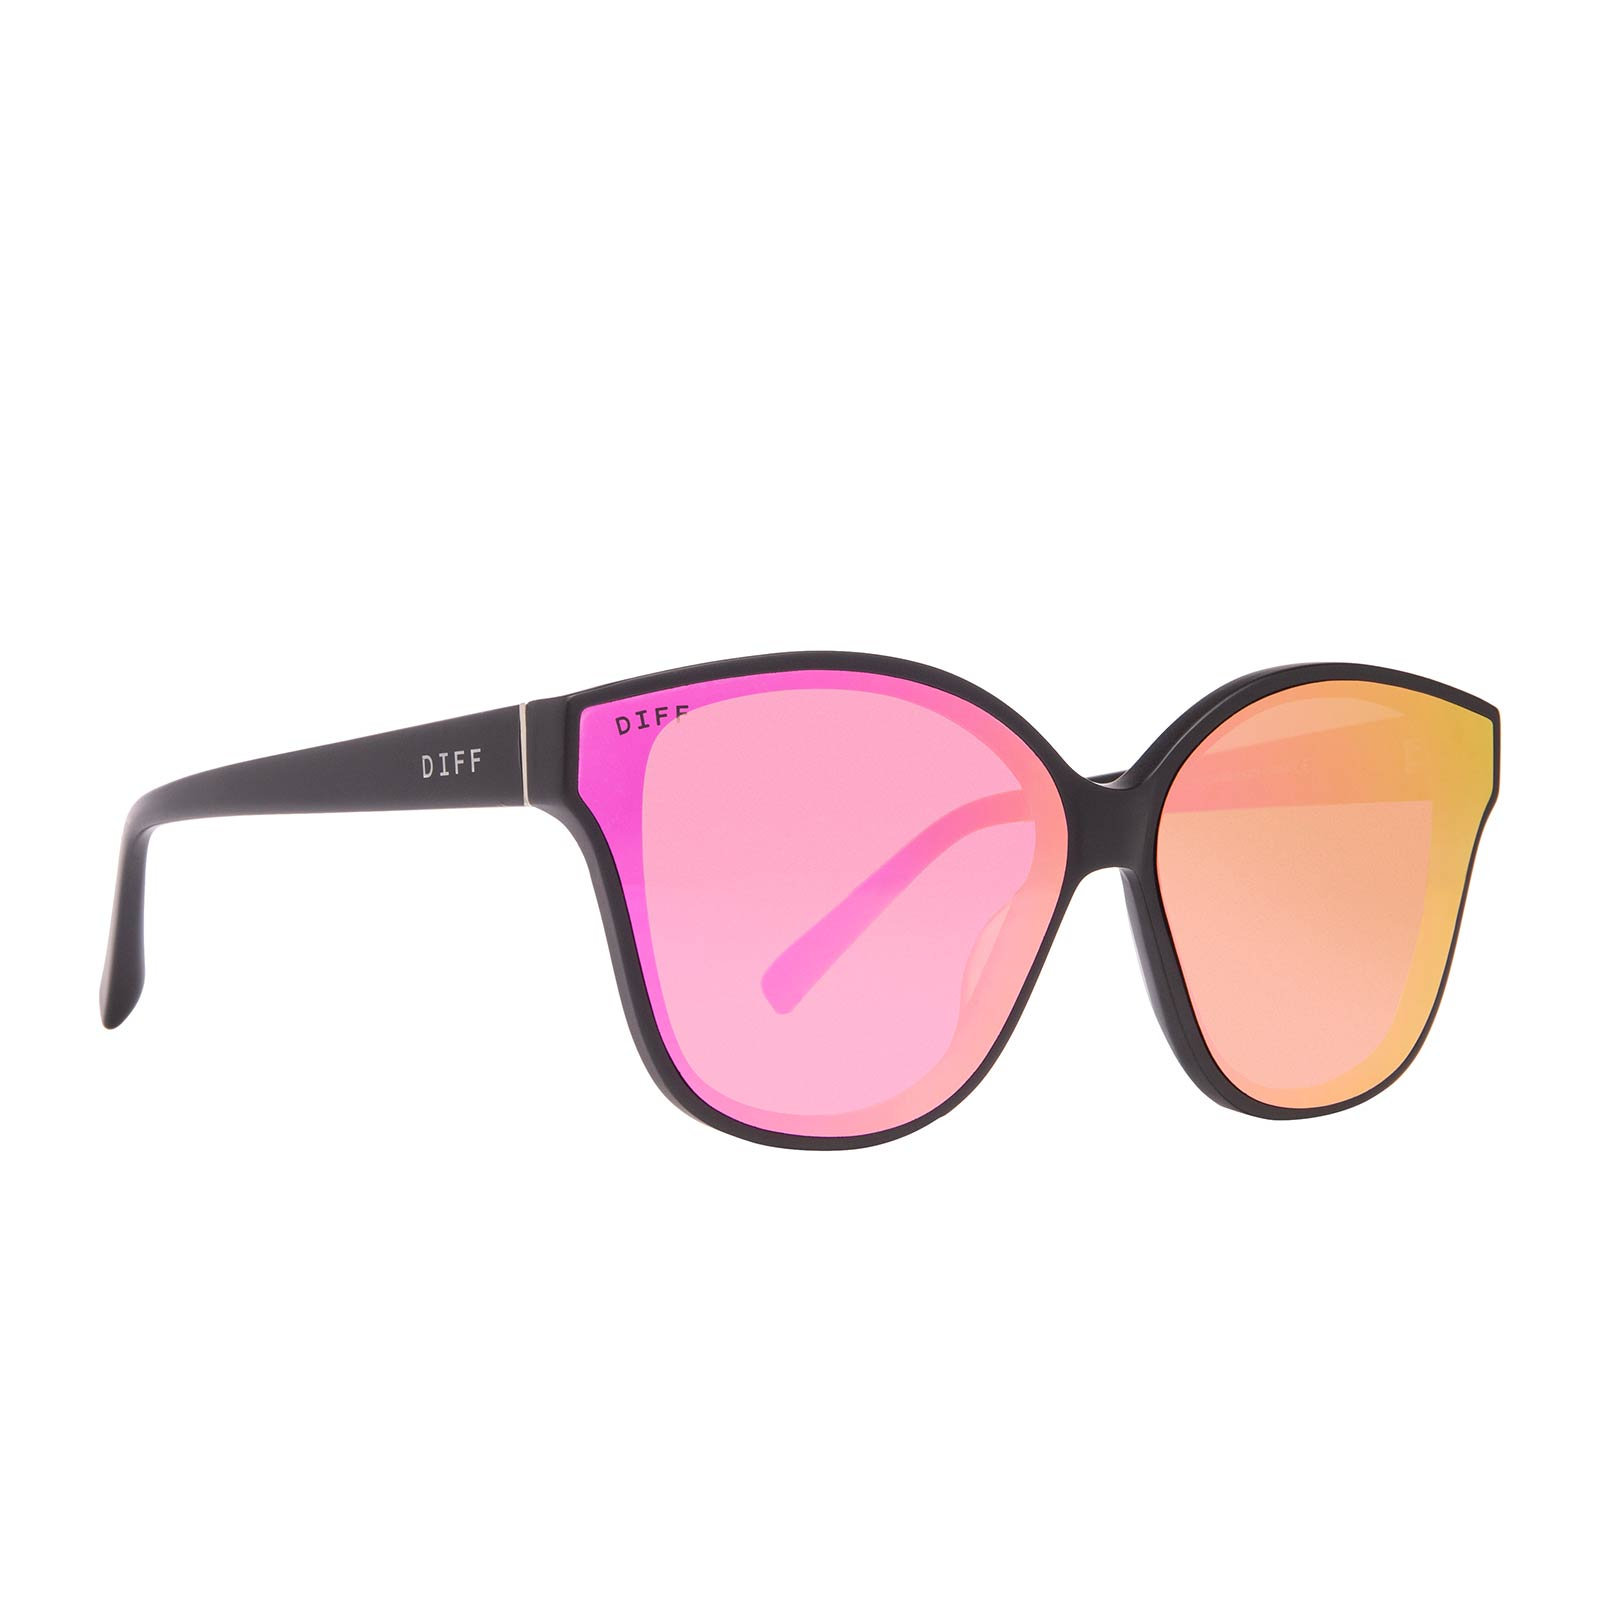 PIPER - MATTE BLACK + PINK MIRROR POLARIZED